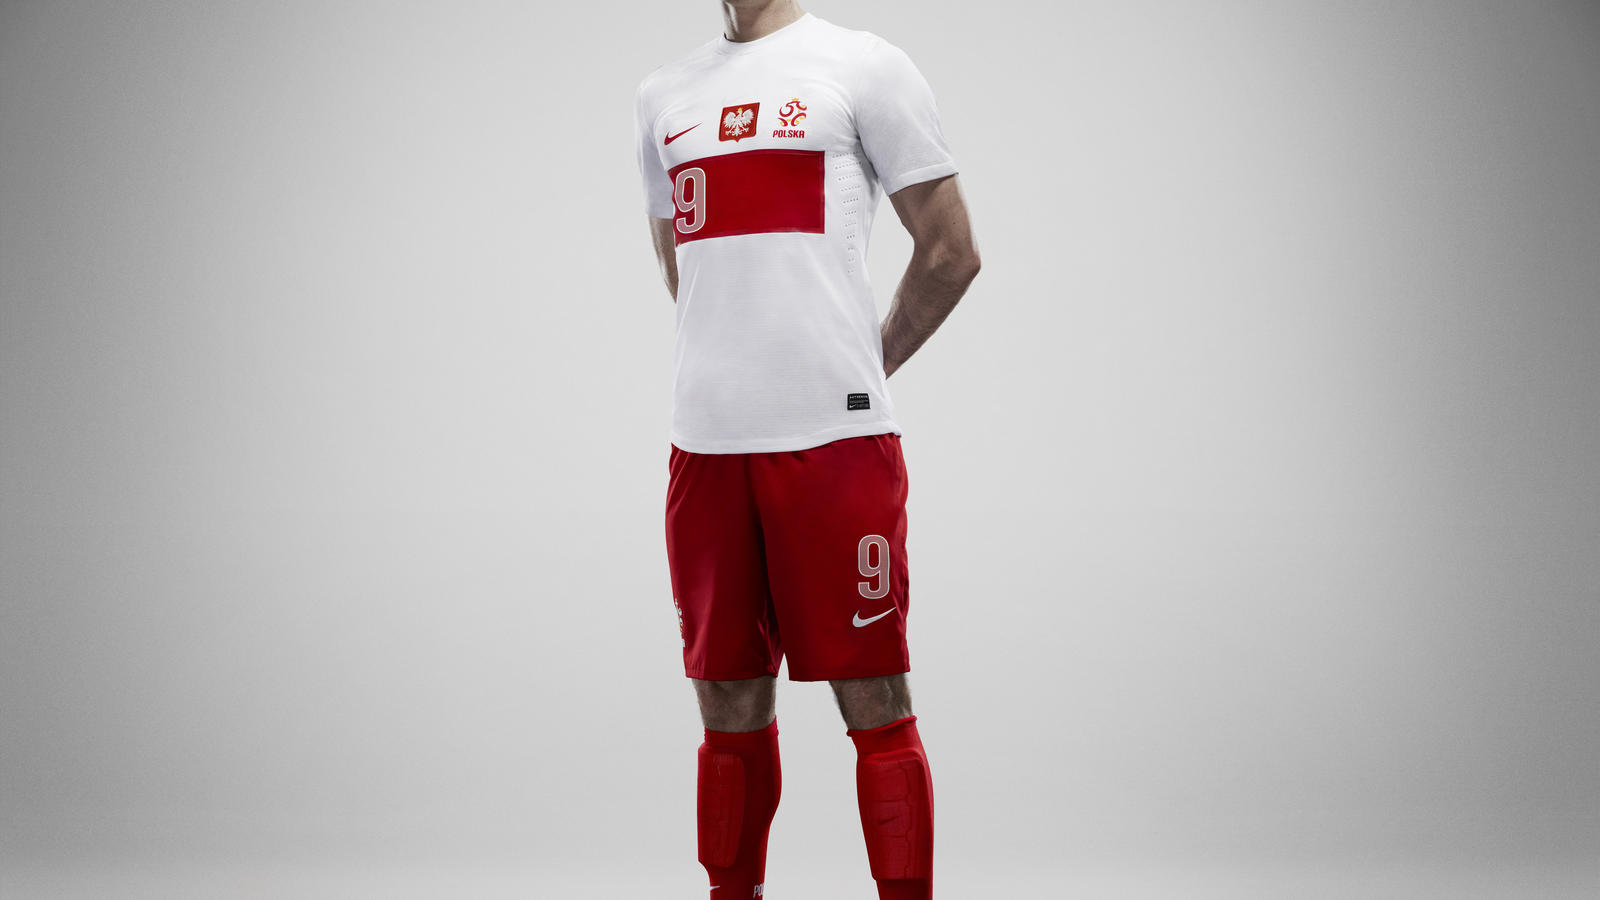 Lewandowski_poland_Home_NTK_01